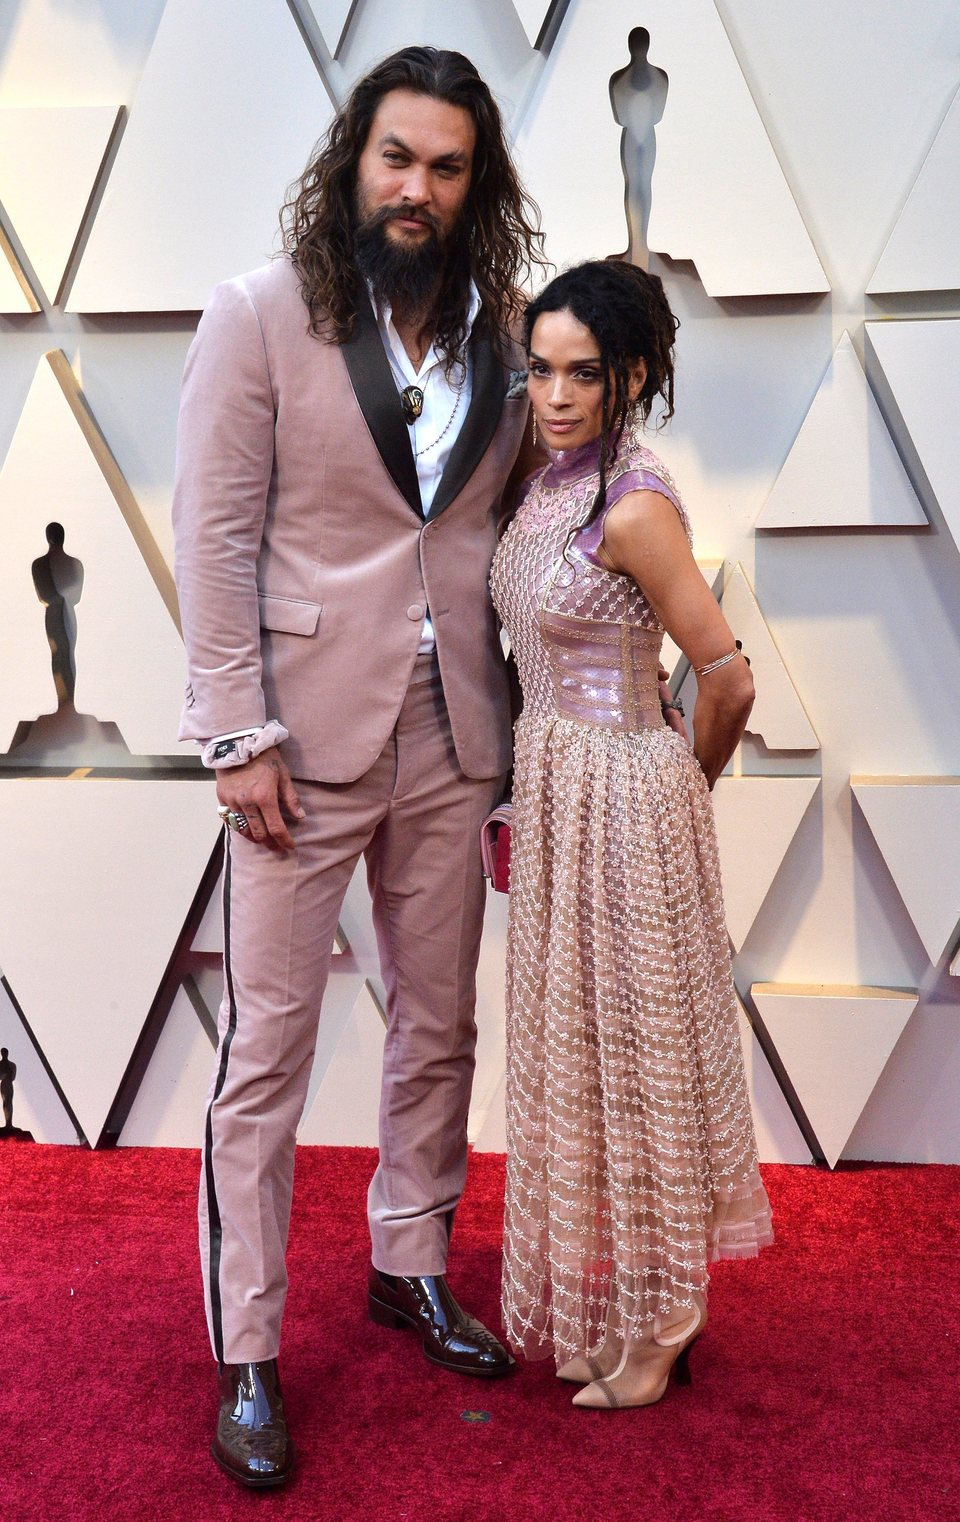 Jason Momoa and Lisa Bonet on the red carpet at the Oscars 2019